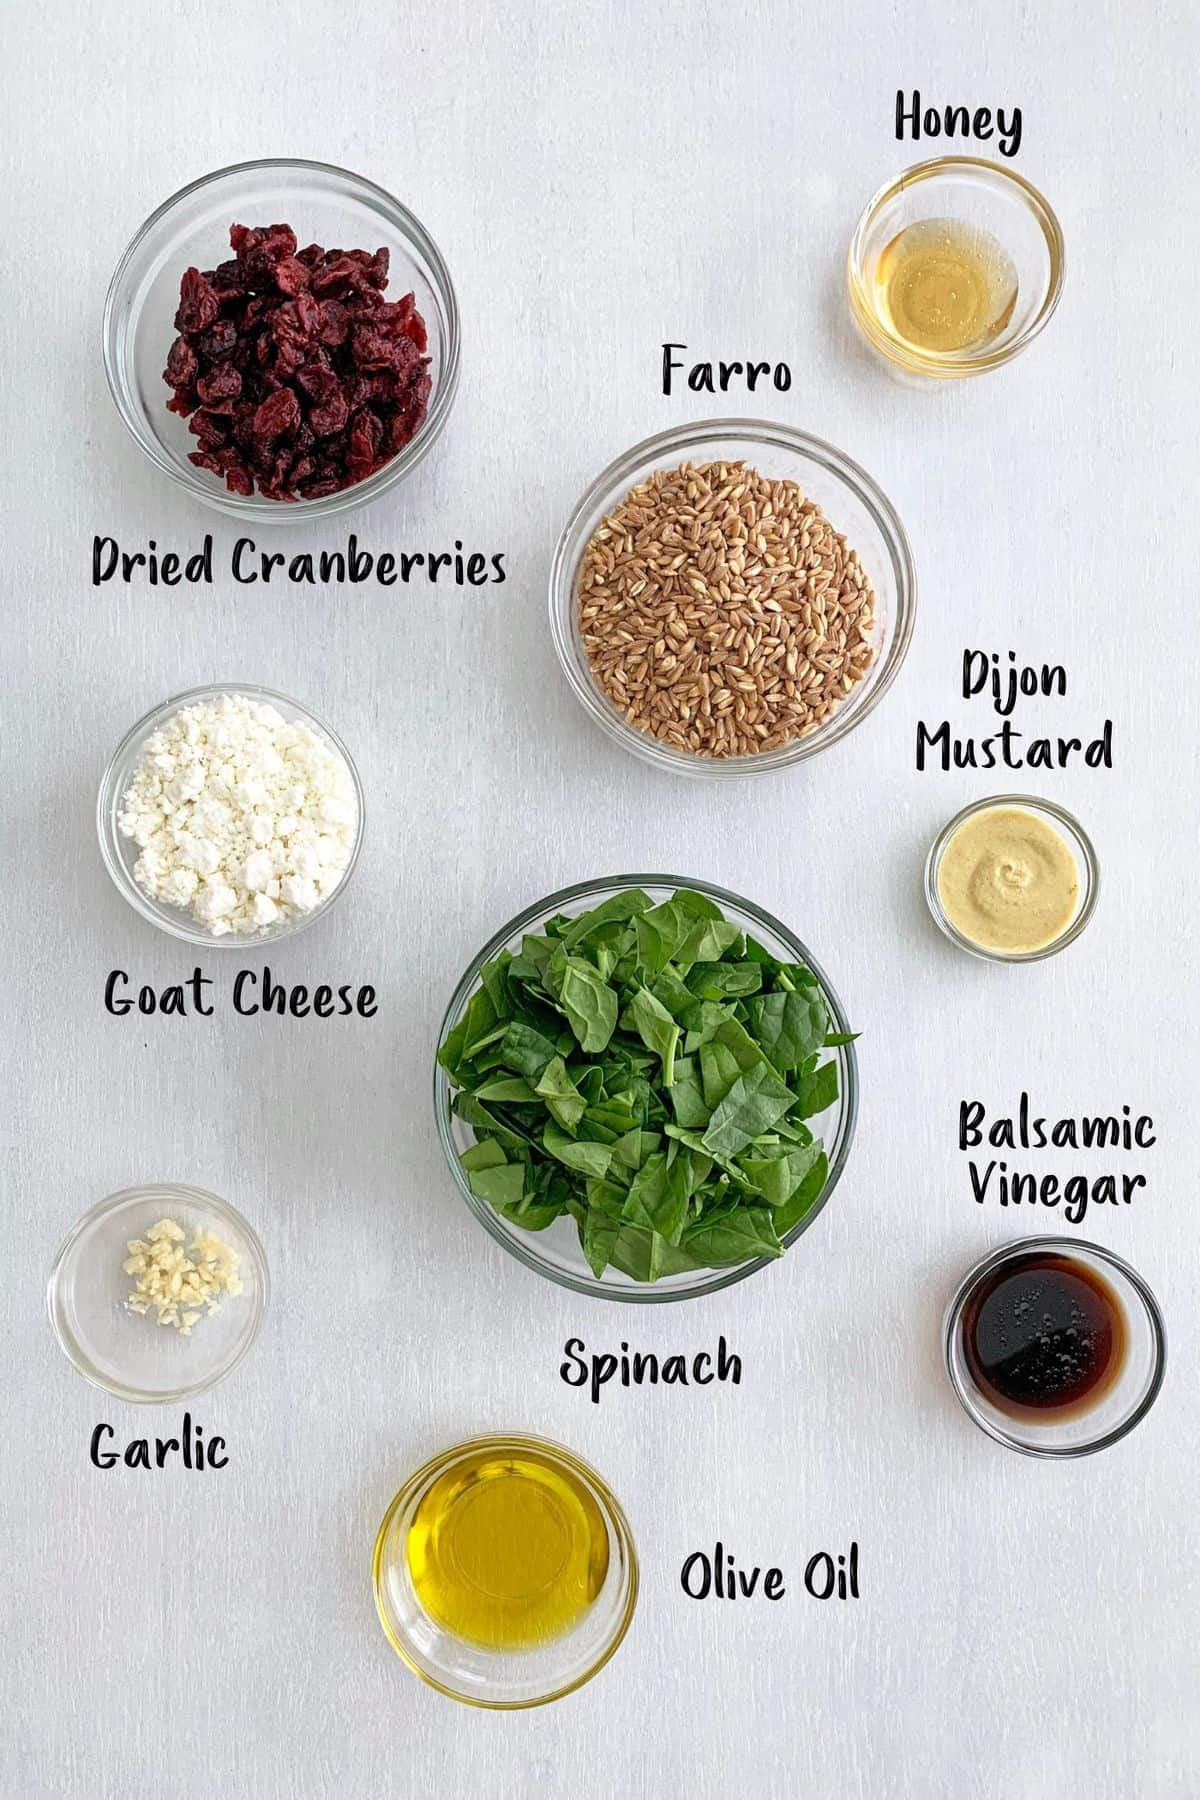 Ingredients for farro salad placed in individual bowls.